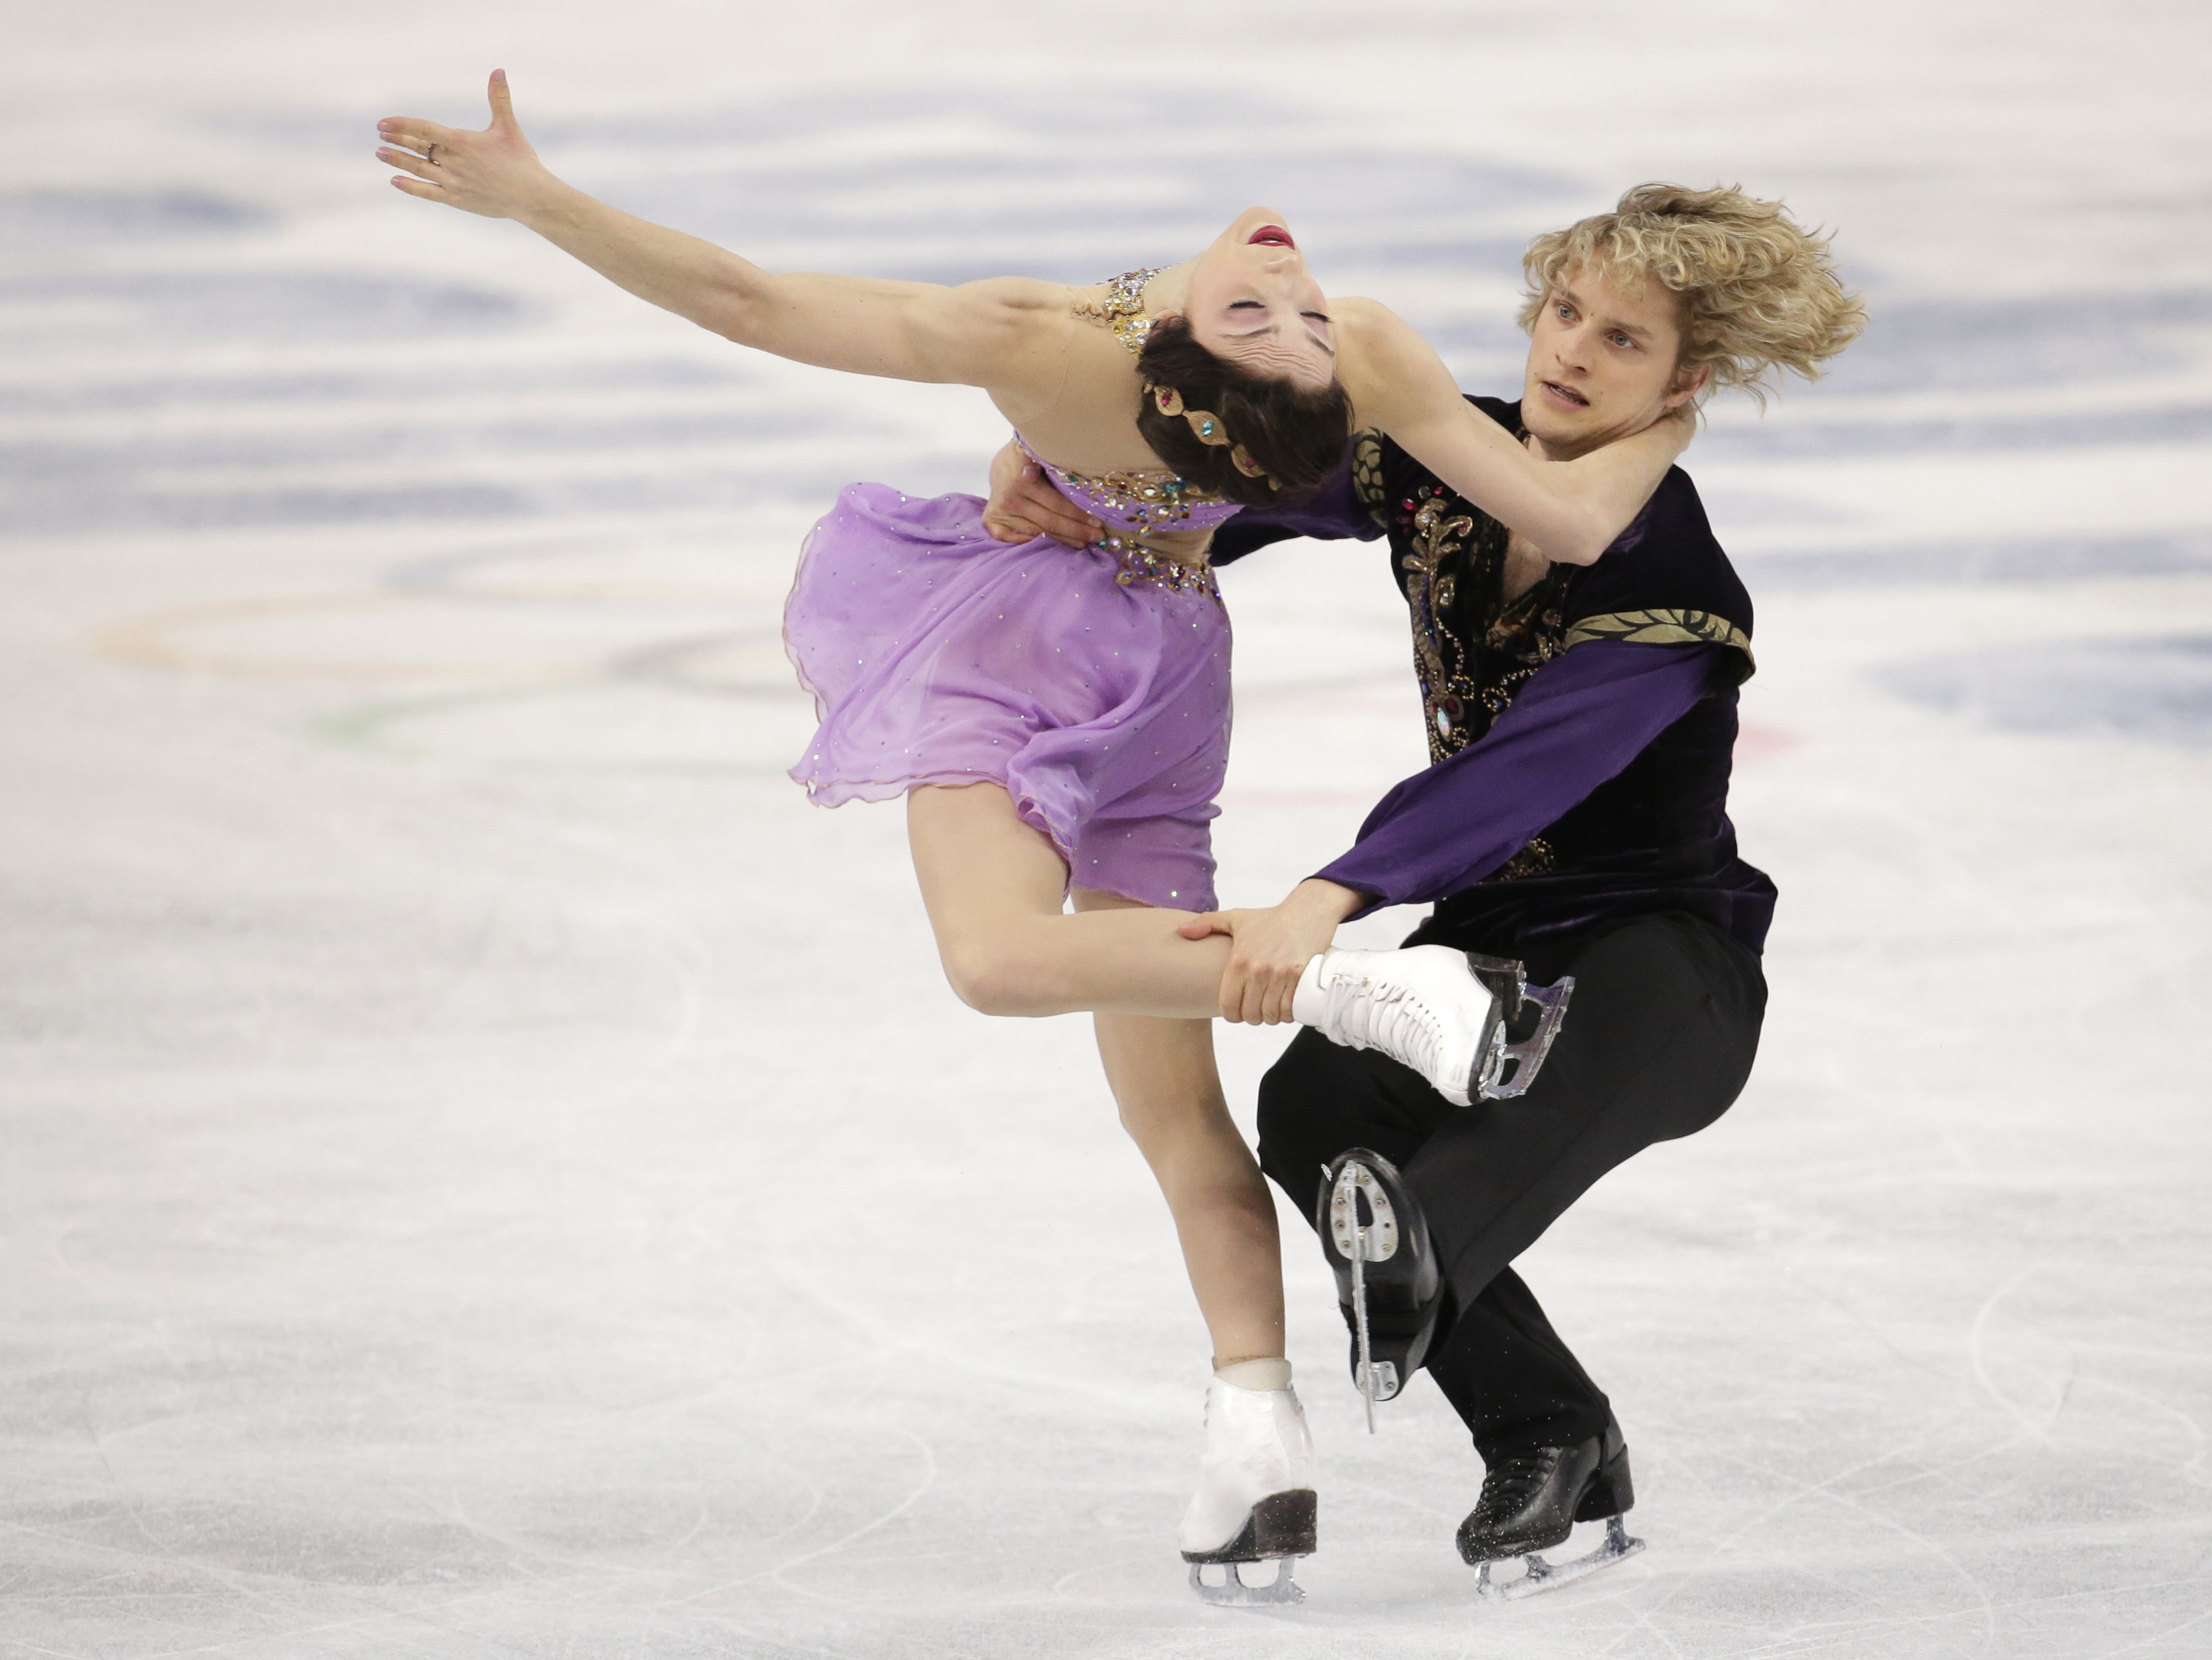 Meryl Davis and Charlie White of the United States compete in the ice dance free dance figure skating finals at the Iceberg Skating Palace.